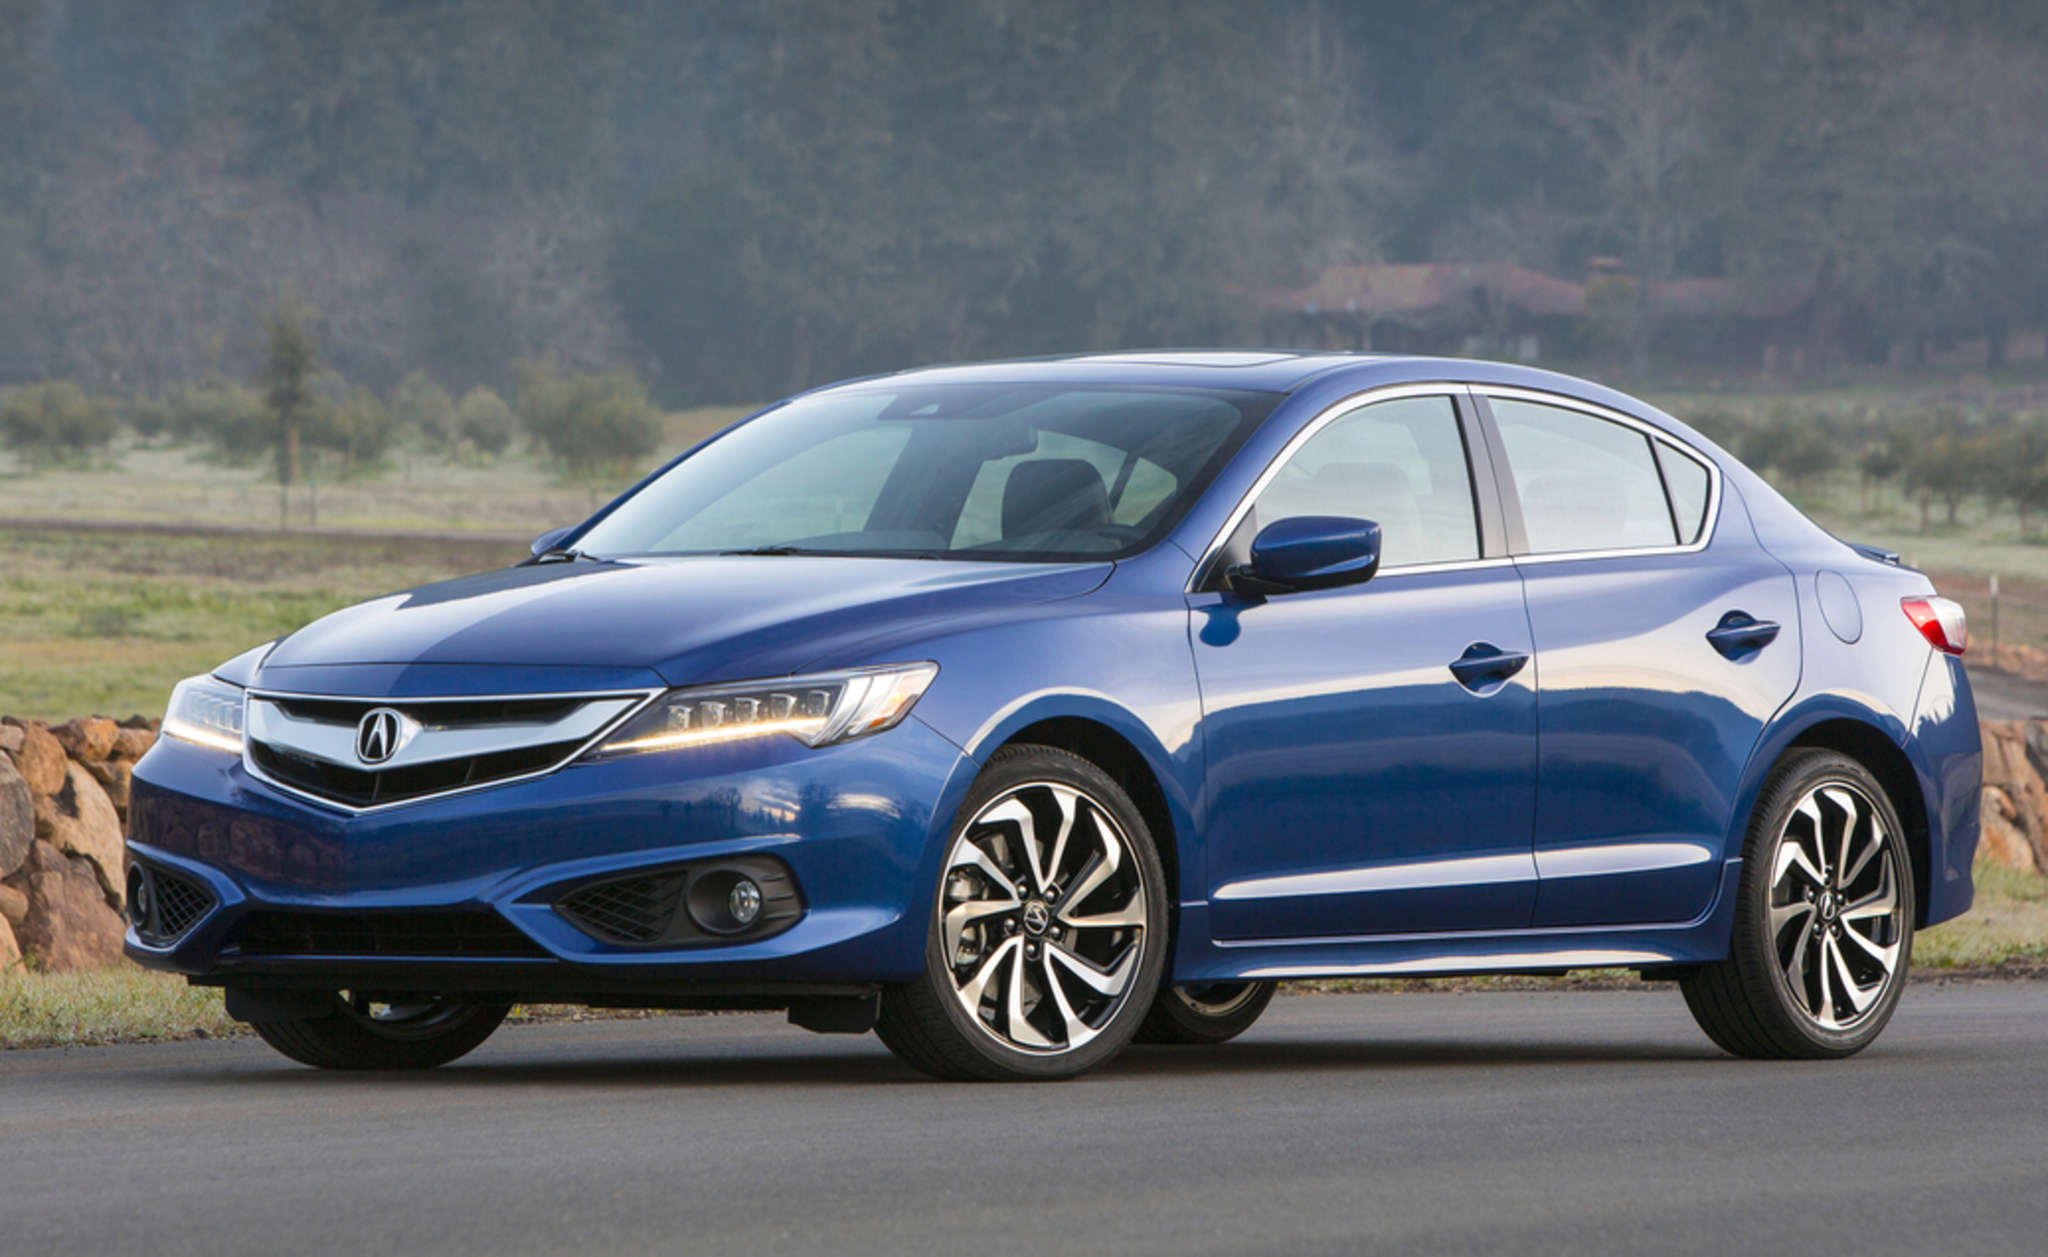 The 2017 Acura ILX may be based on the Honda Civic, but its exterior is much more attractive and upscale.